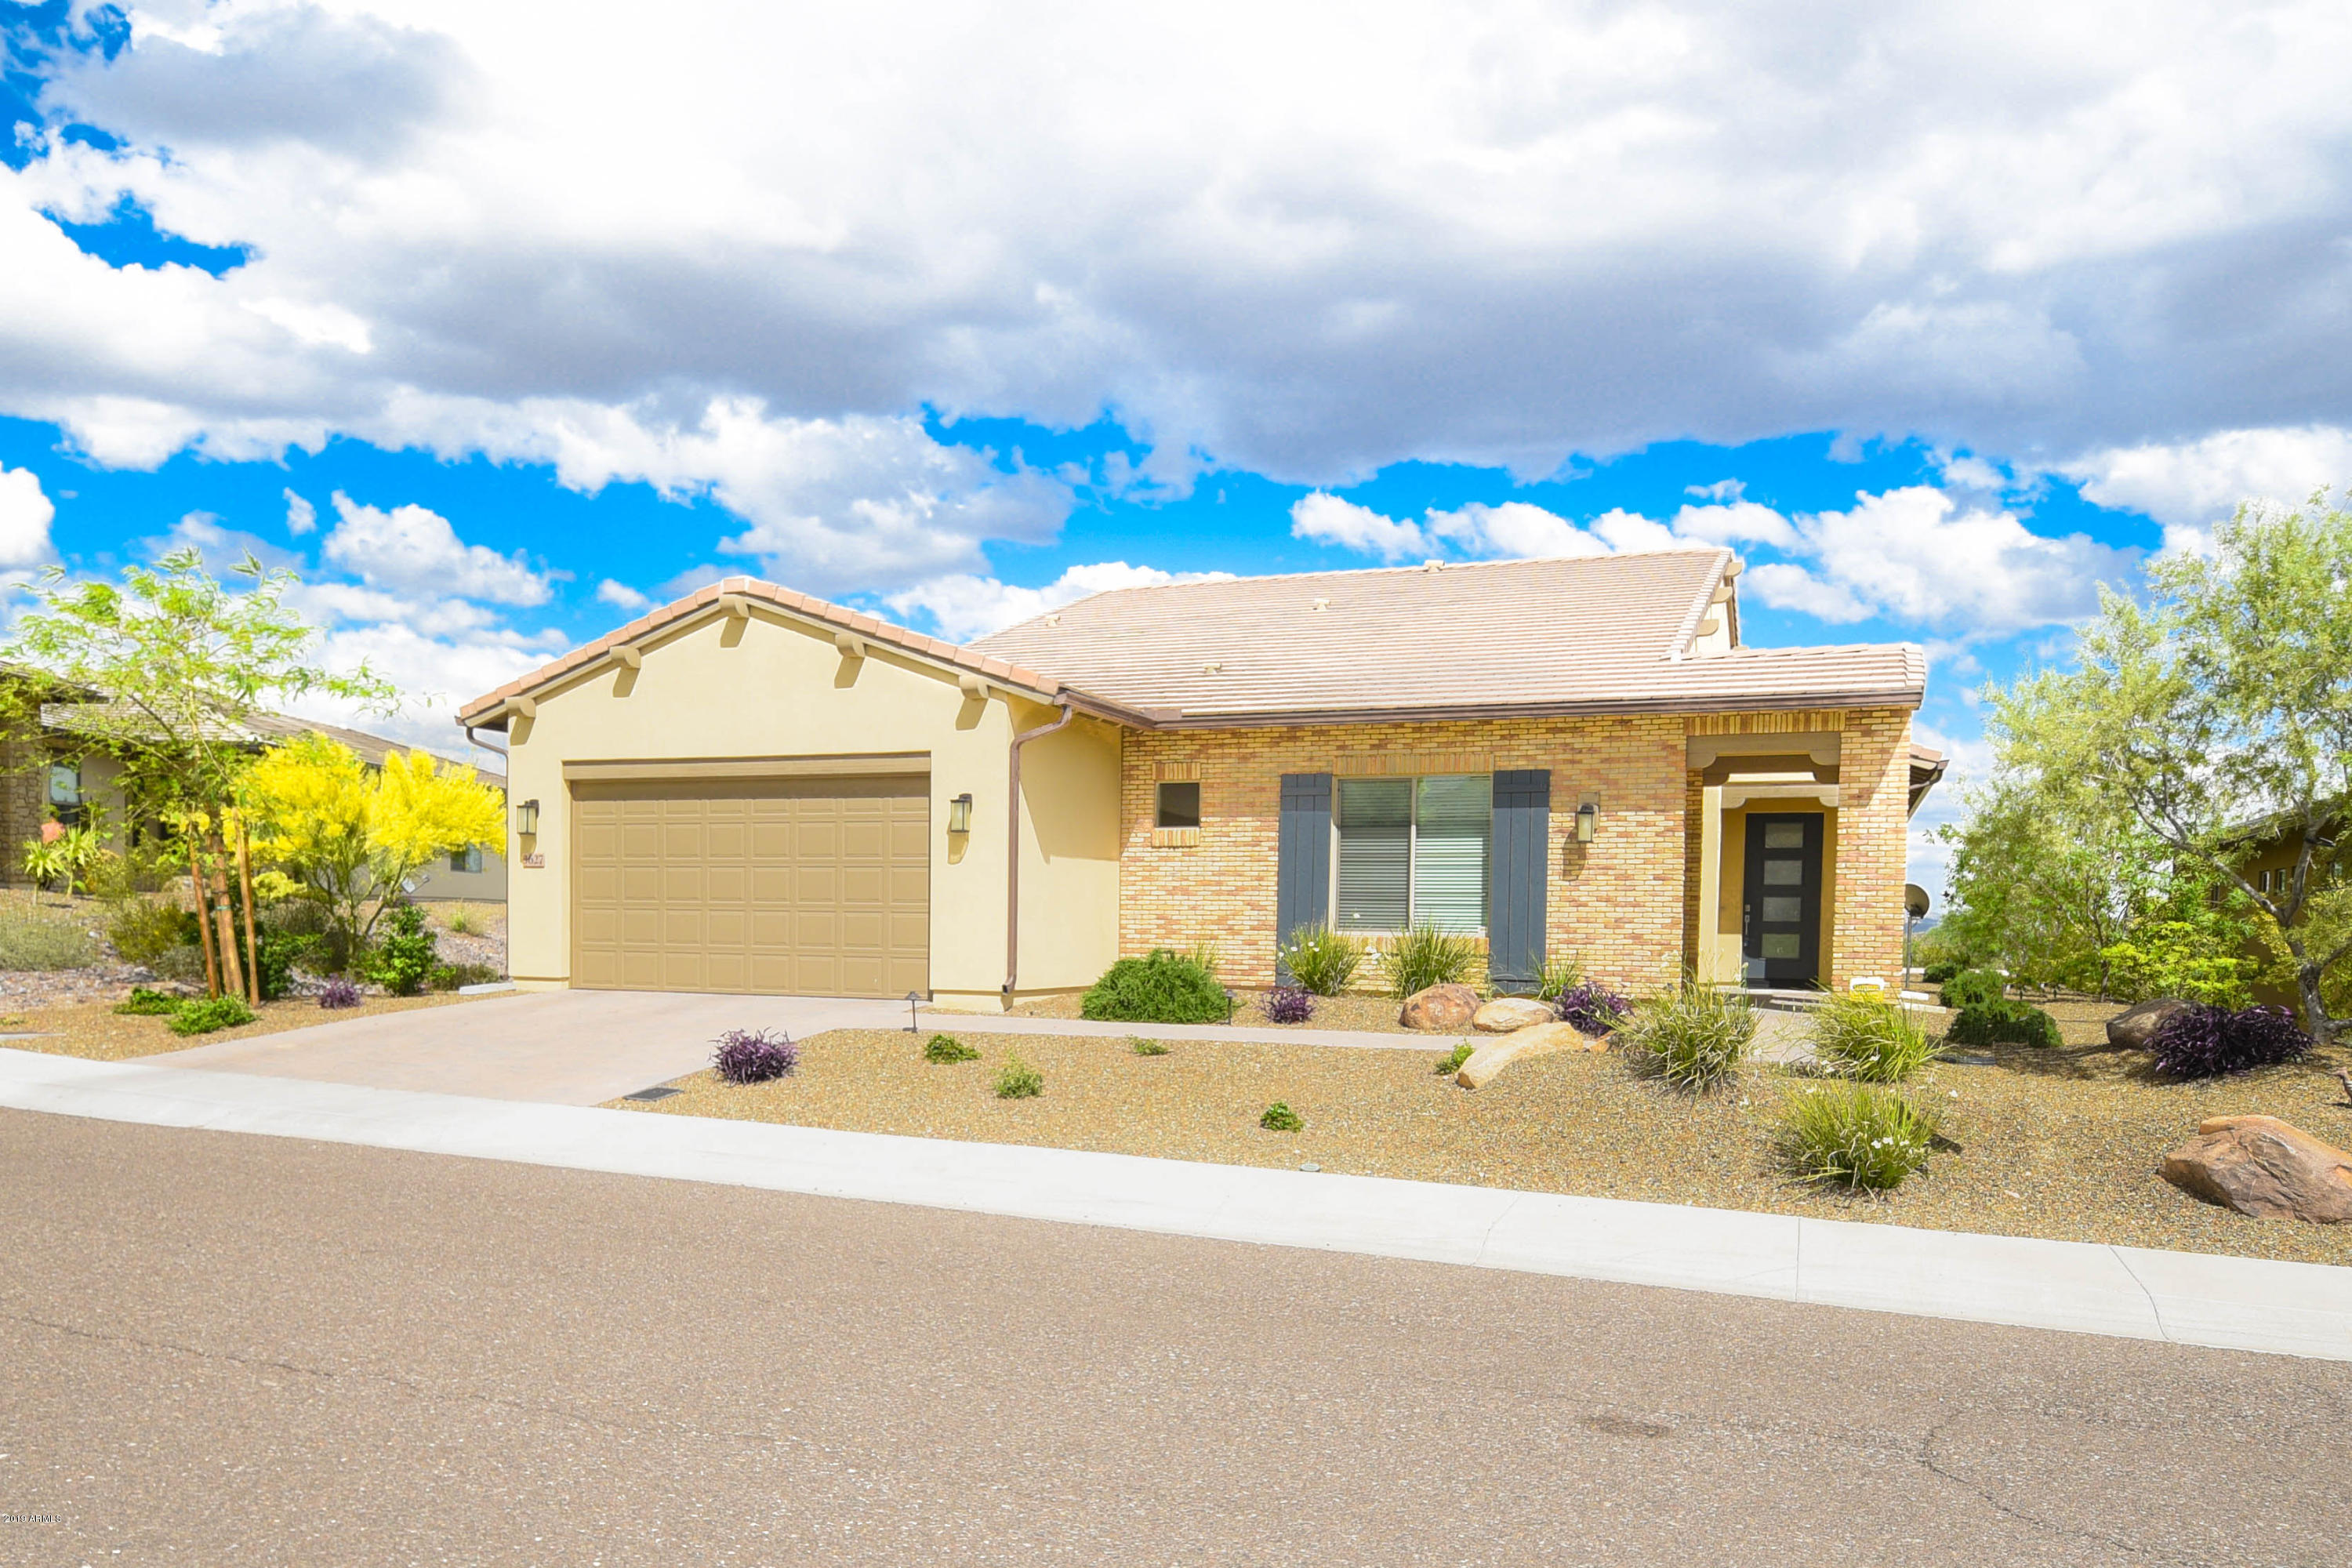 Photo of 3627 STAMPEDE Drive, Wickenburg, AZ 85390